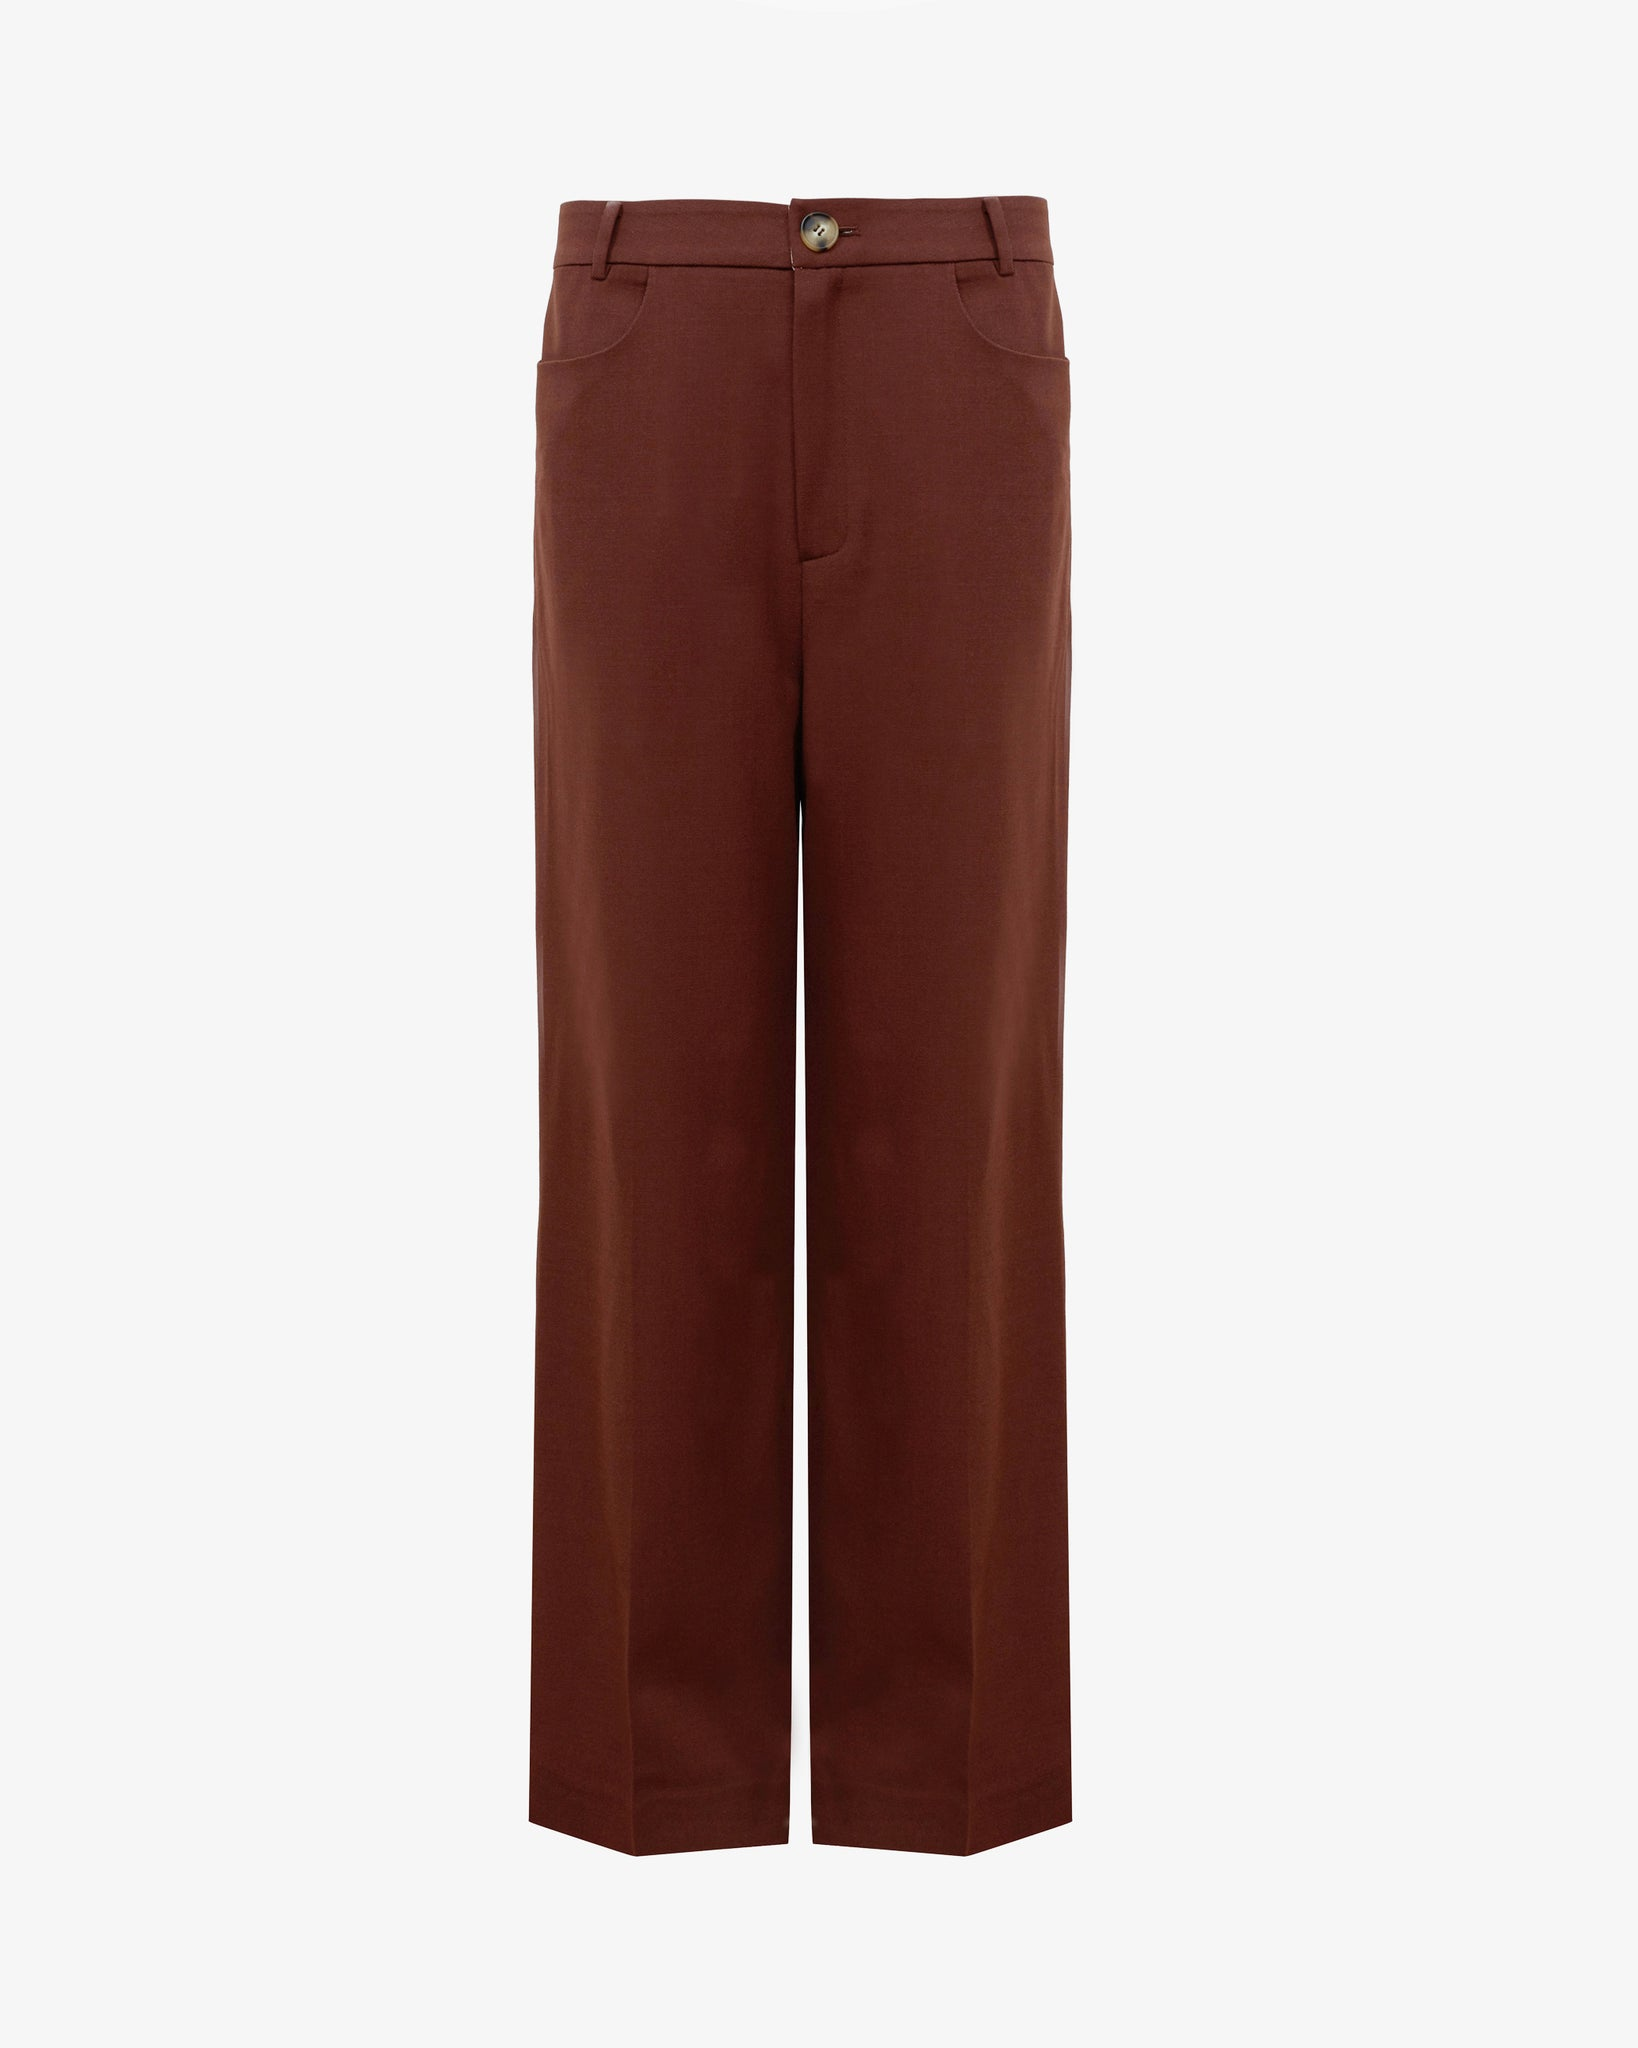 Elliot Trousers Wool Blend Brown